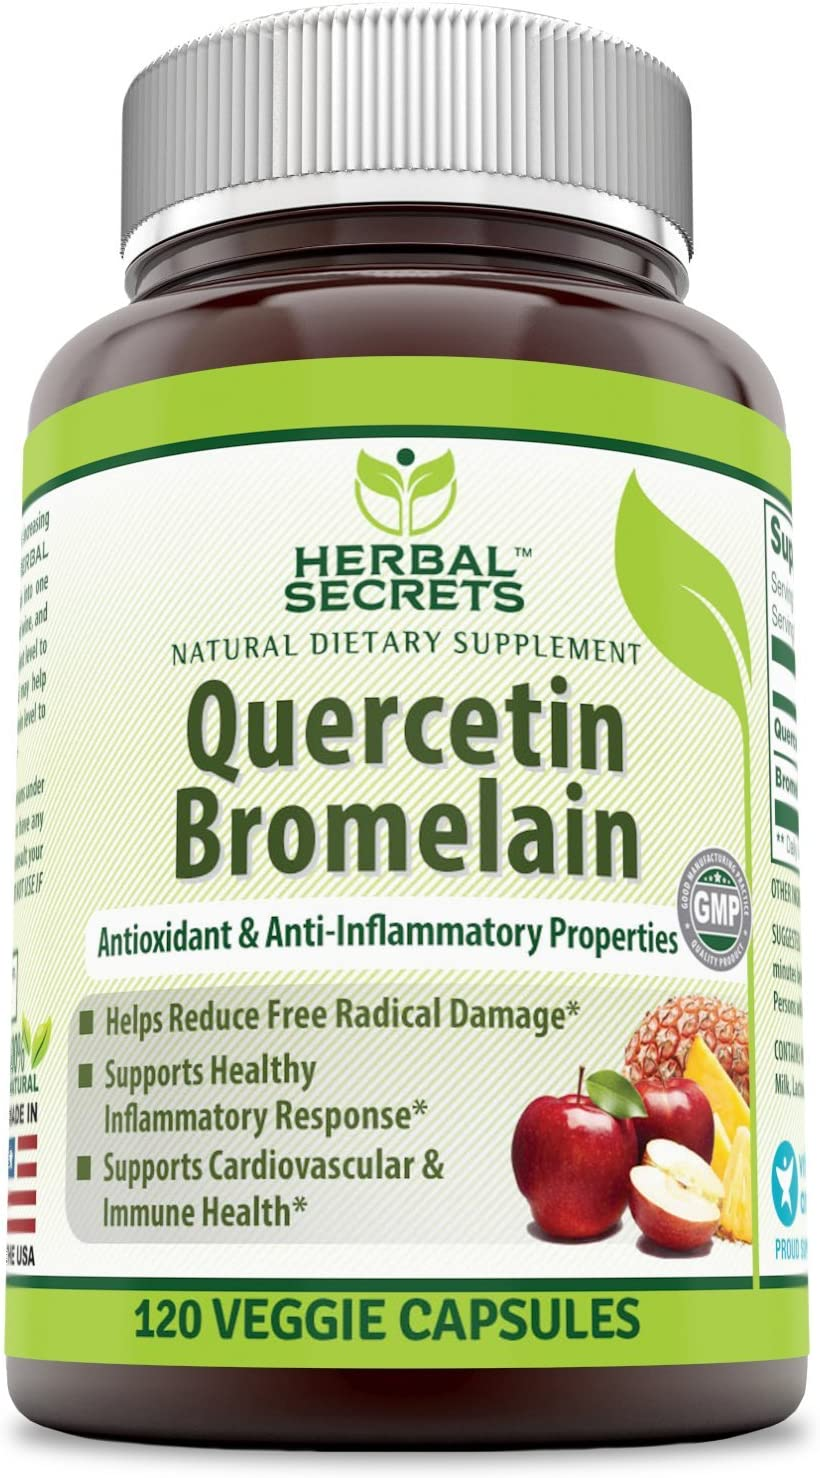 Herbal Secrets Quercetin 800 Mg with Bromelain 165 Mg, 120 Veggie Capsules (Non-GMO) - Supports Cardiovascular & Immune Health * Supports Healthy inflammatory Response *